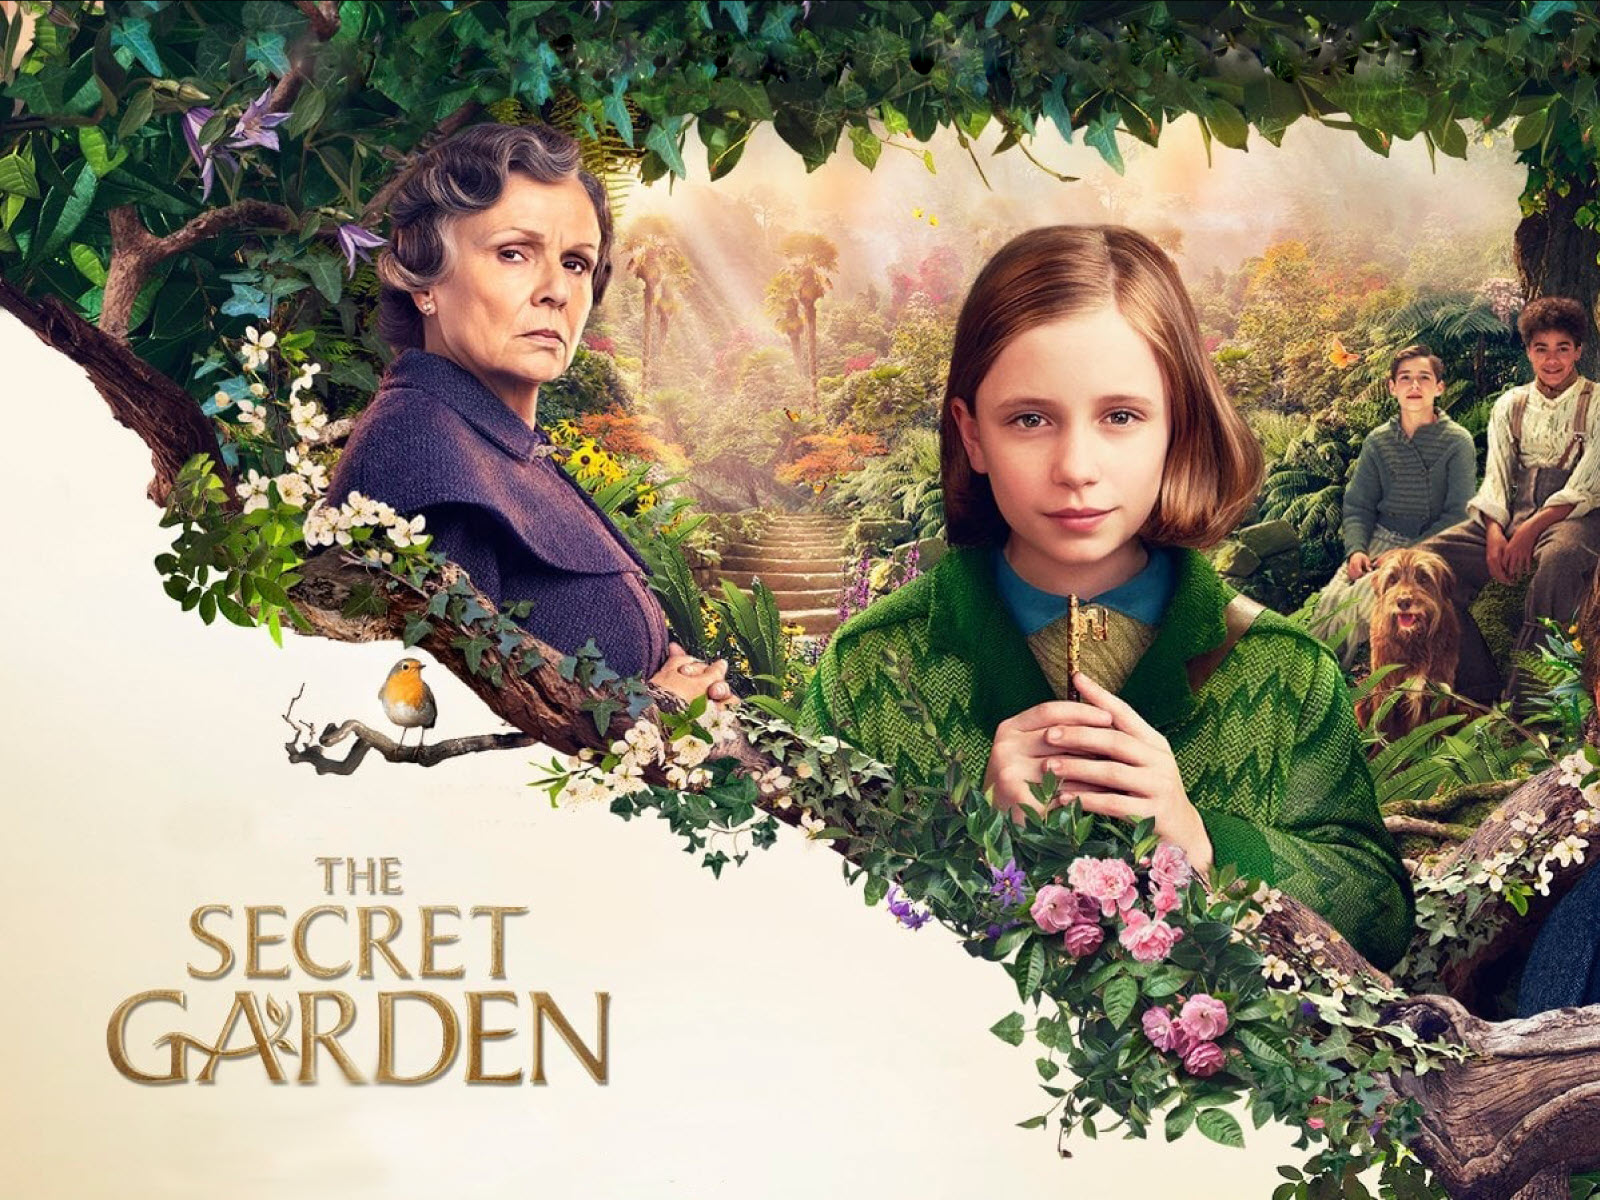 A beautiful fantasy drama from the producers of Harry Potter, and based on the 1911 novel of the same name by Frances Hodgson Burnett...